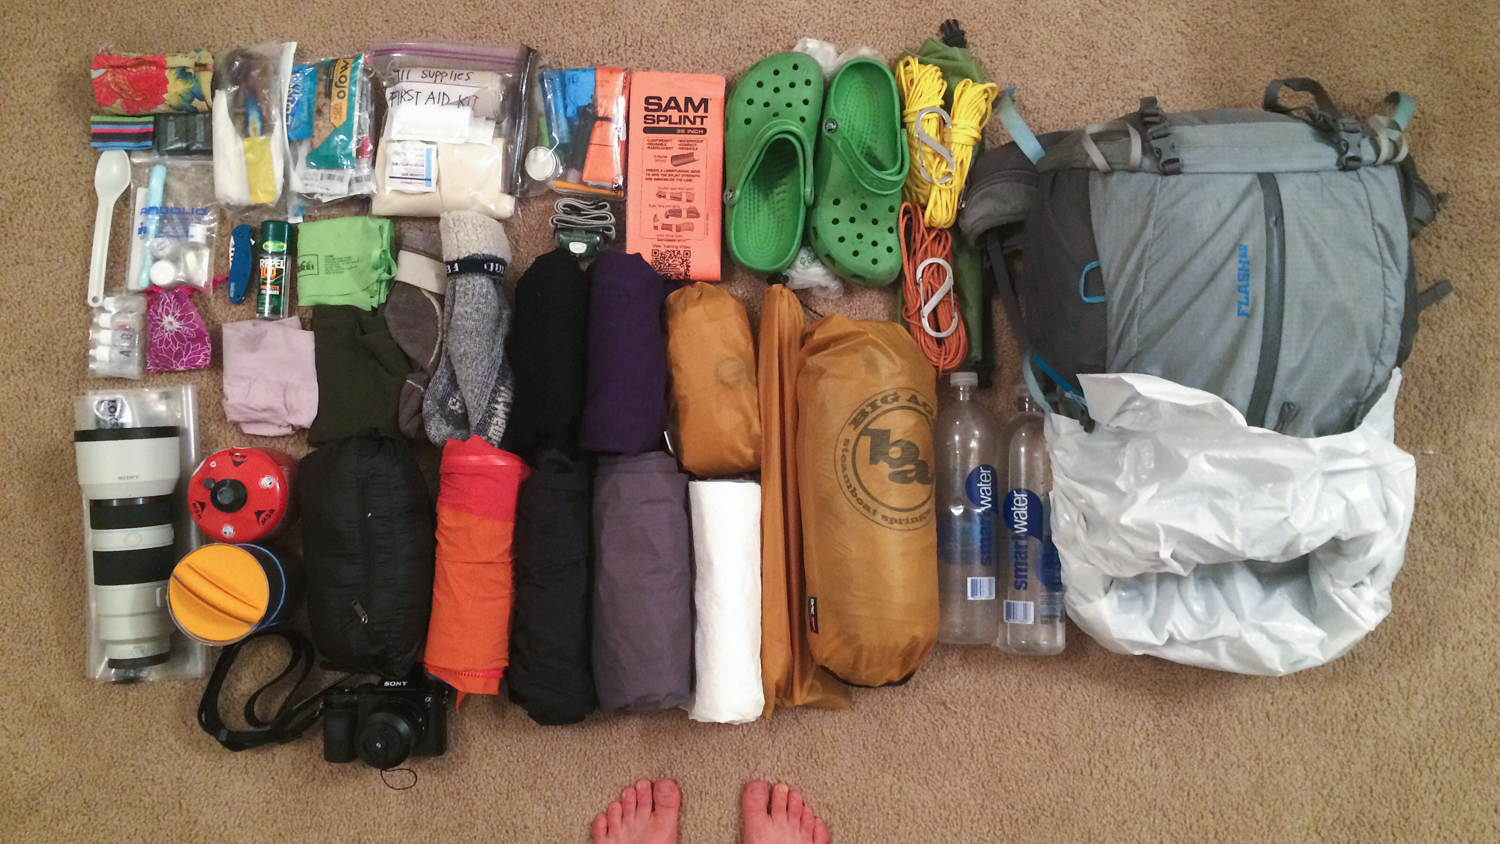 I took a few more things than I would on a solo tripsince we were a group of seven. Some new things I've added to my overall pack weight include: more robust first aid kit, survival kit, and 911 food.My pack was heavier than normal, but overall it was still quite manageable.